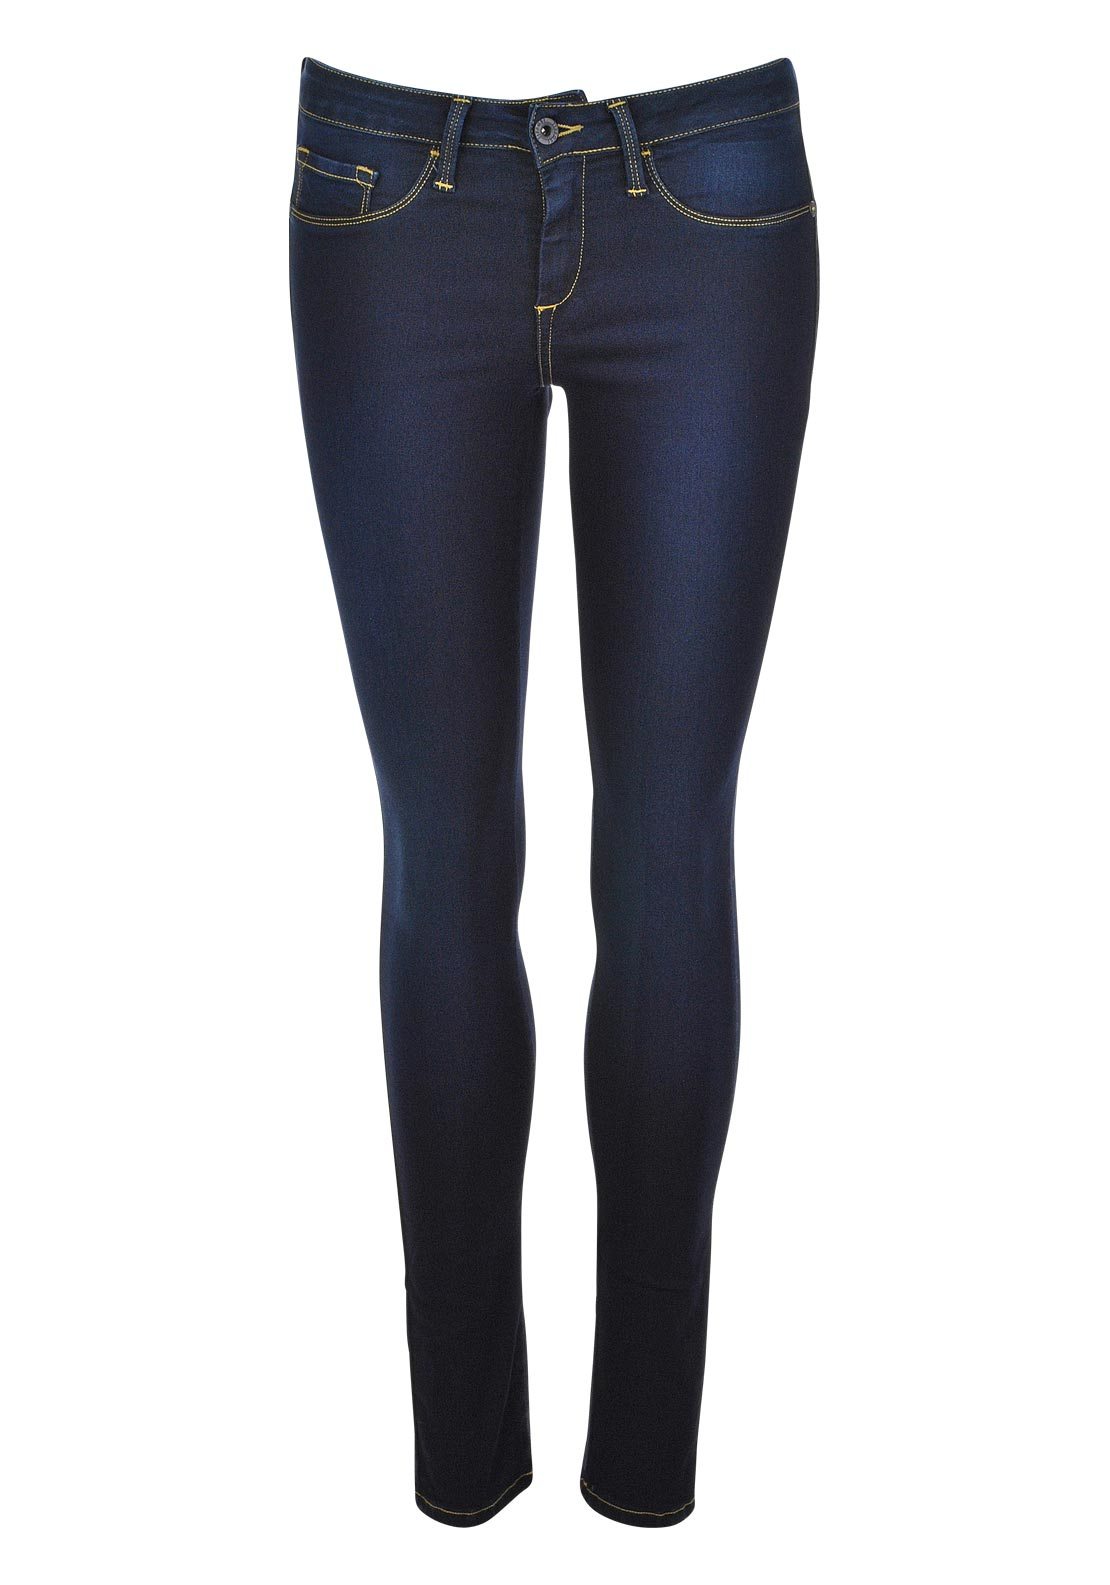 Tiffosi One Size Fits All Skinny Jeans, Dark Denim